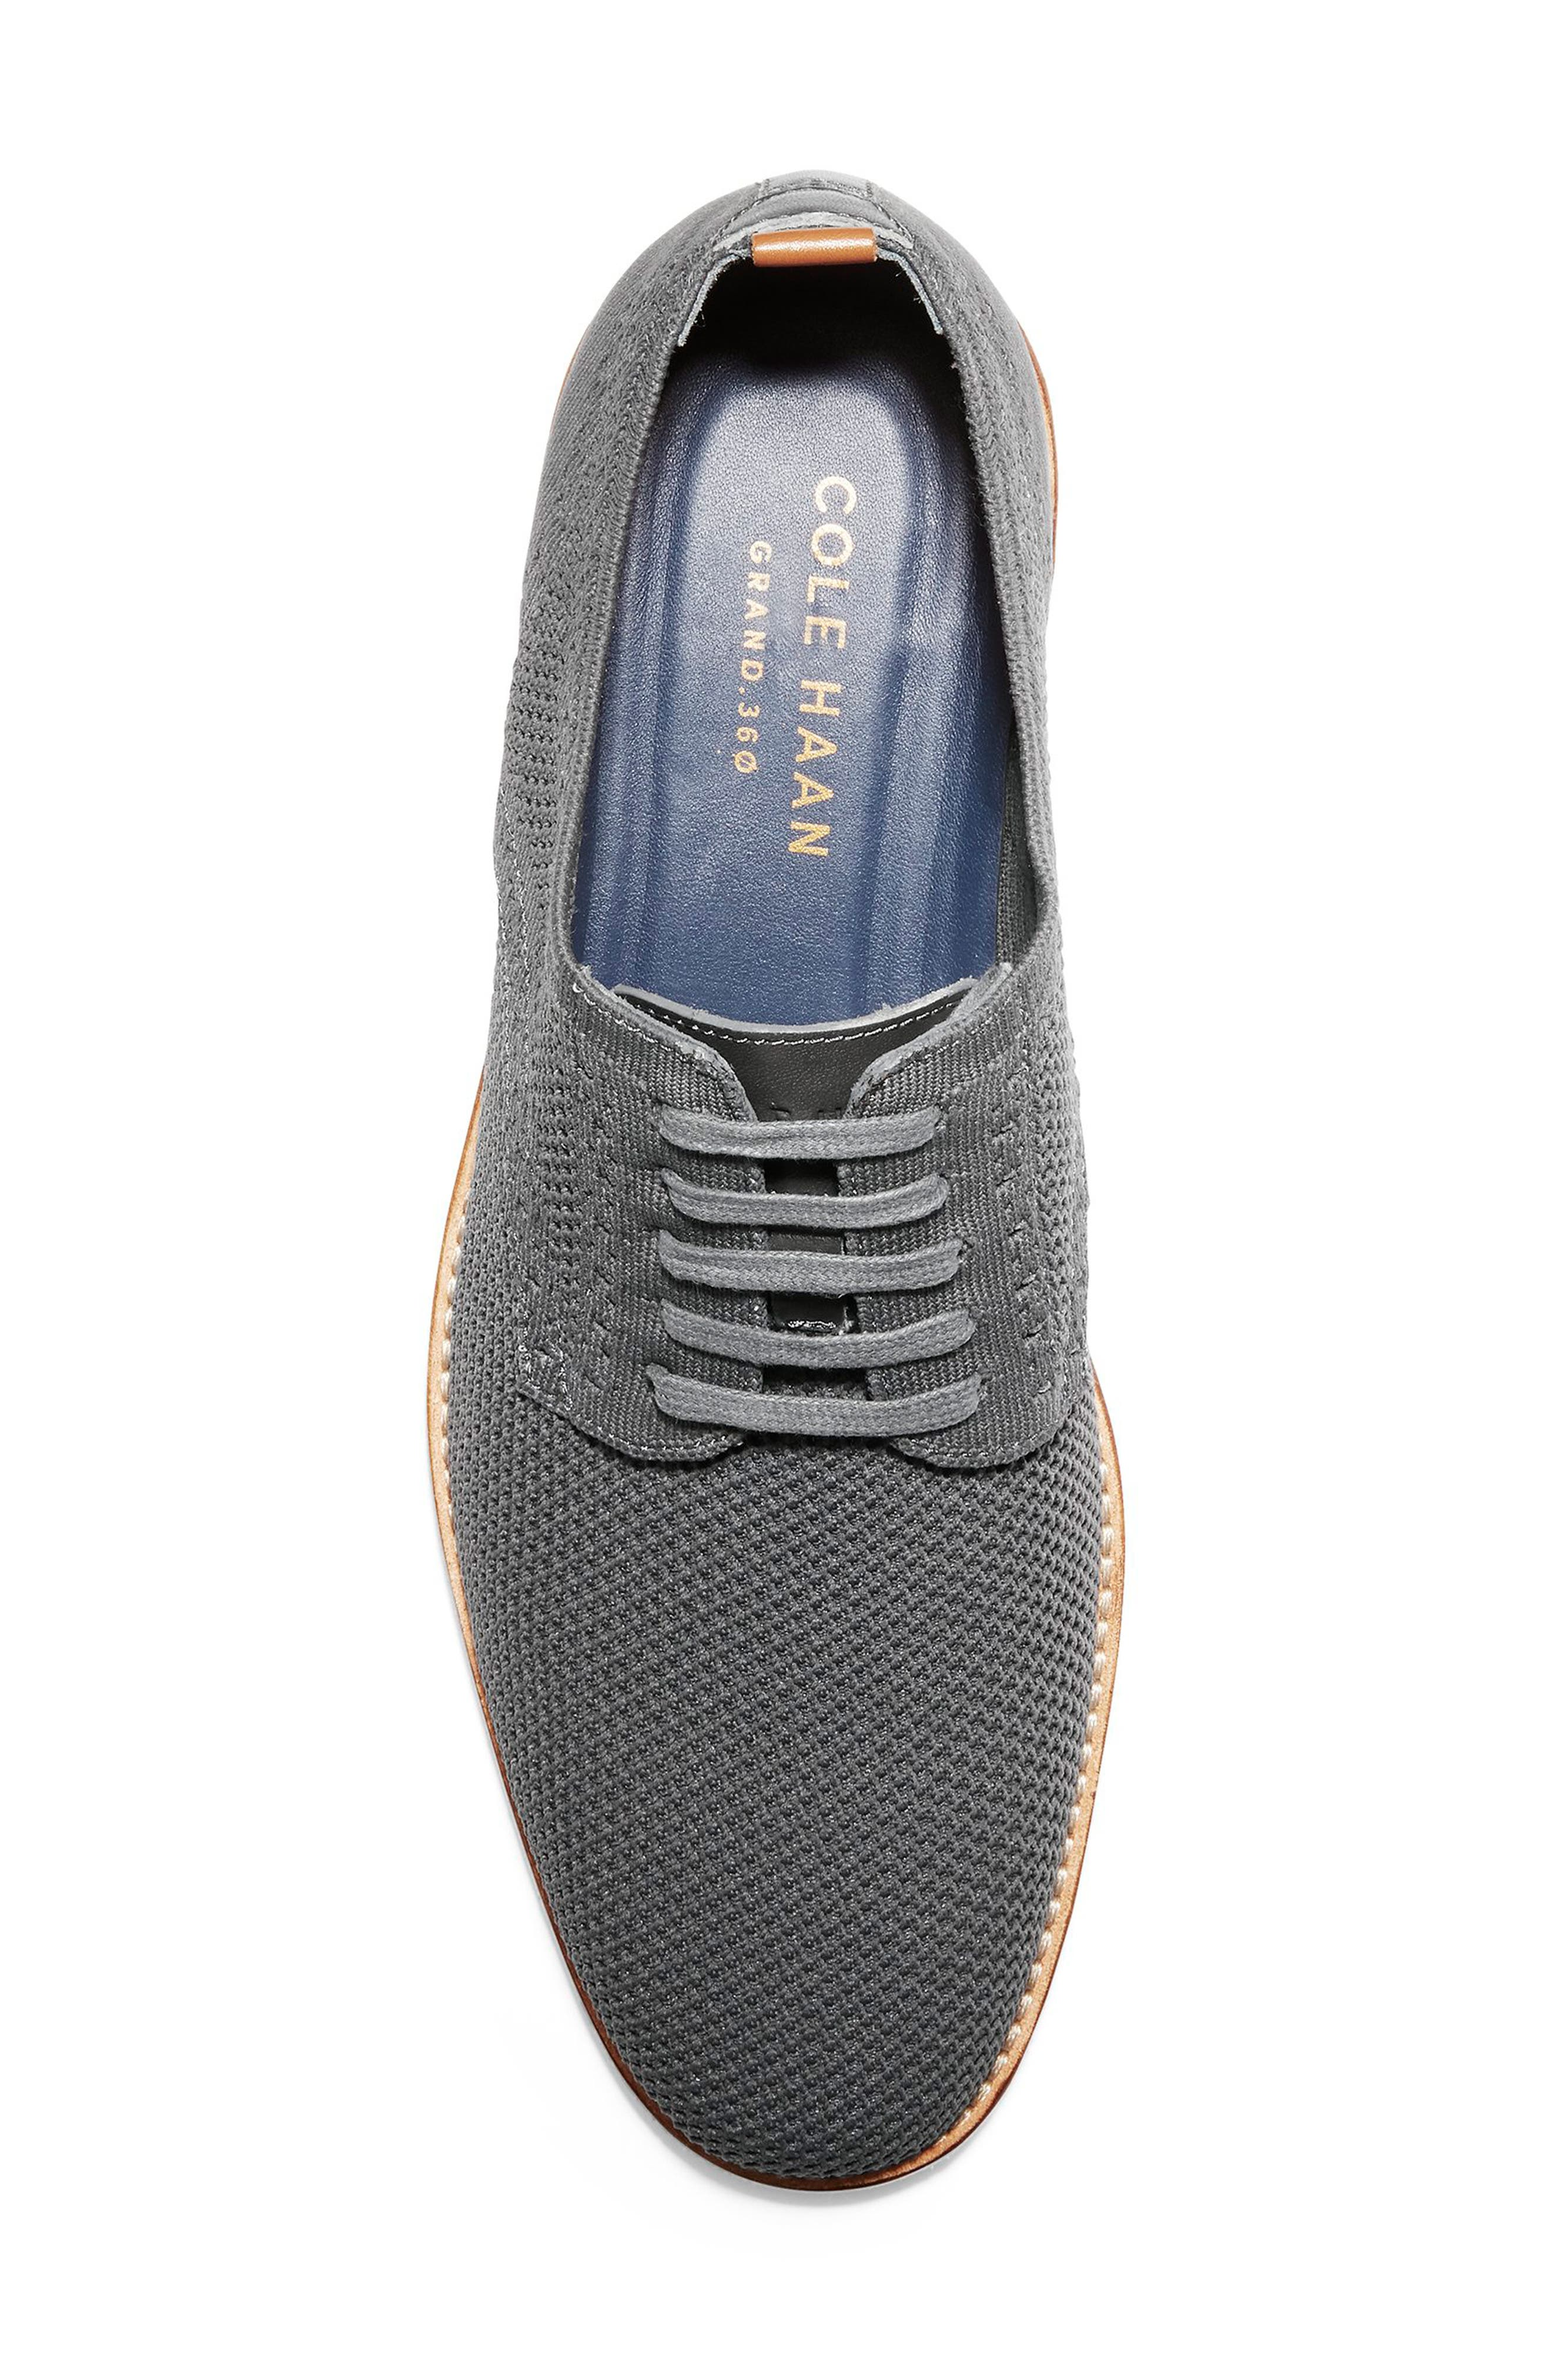 COLE HAAN, Feathercraft Grand Stitchlite Plain Toe Derby, Alternate thumbnail 5, color, MAGNET KNIT